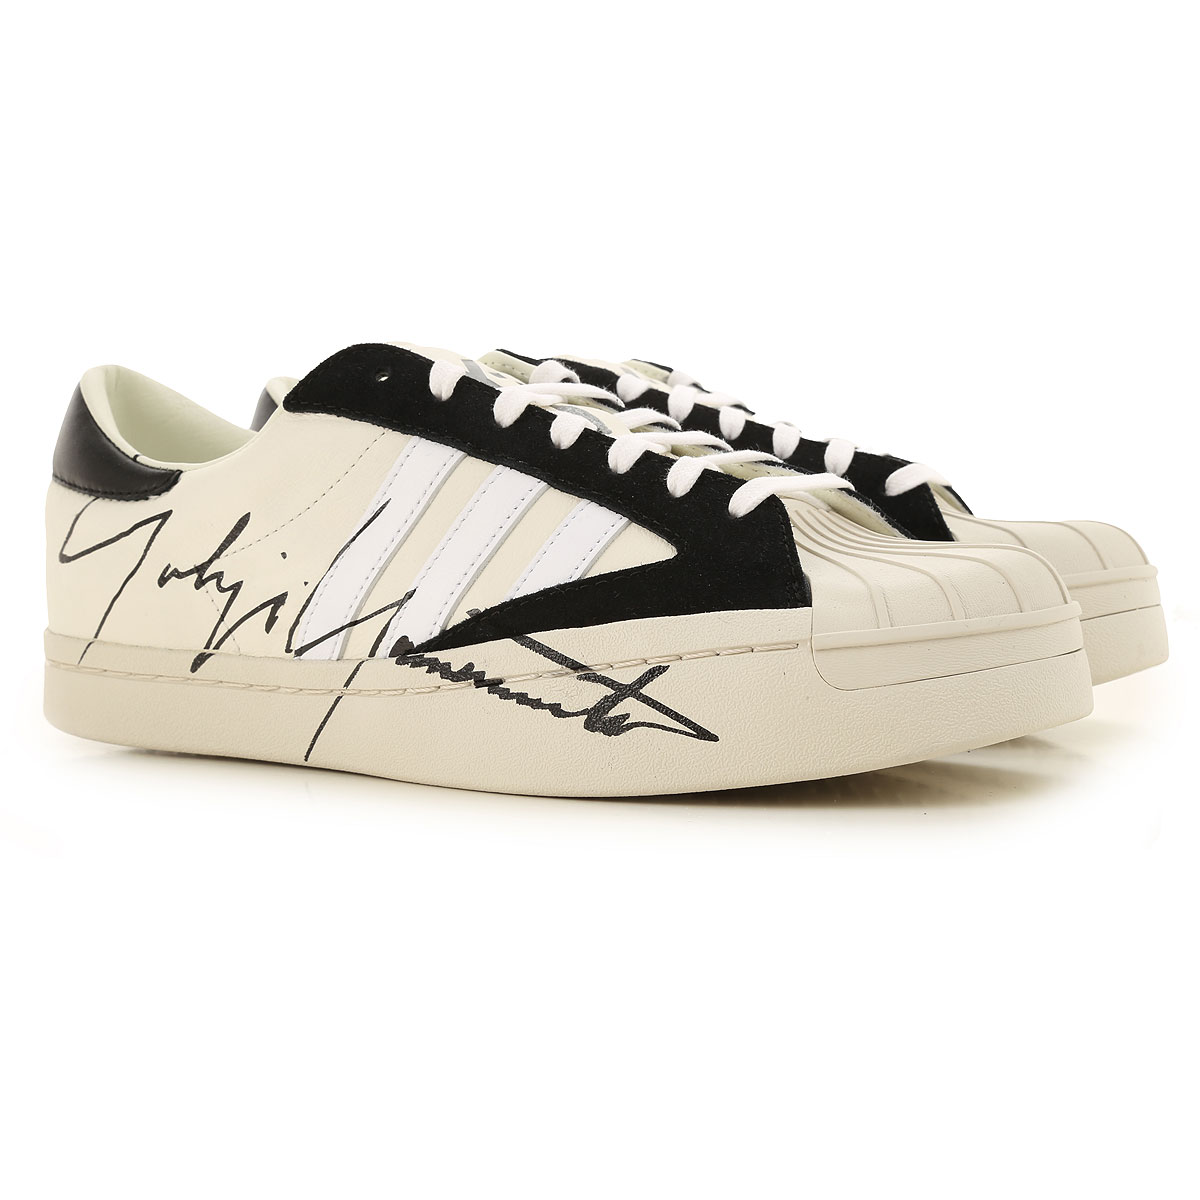 Y3 by Yohji Yamamoto Sneakers for Men On Sale, White, Leather, 2019, 10.5 11.5 7.5 8 8.5 9 9.5